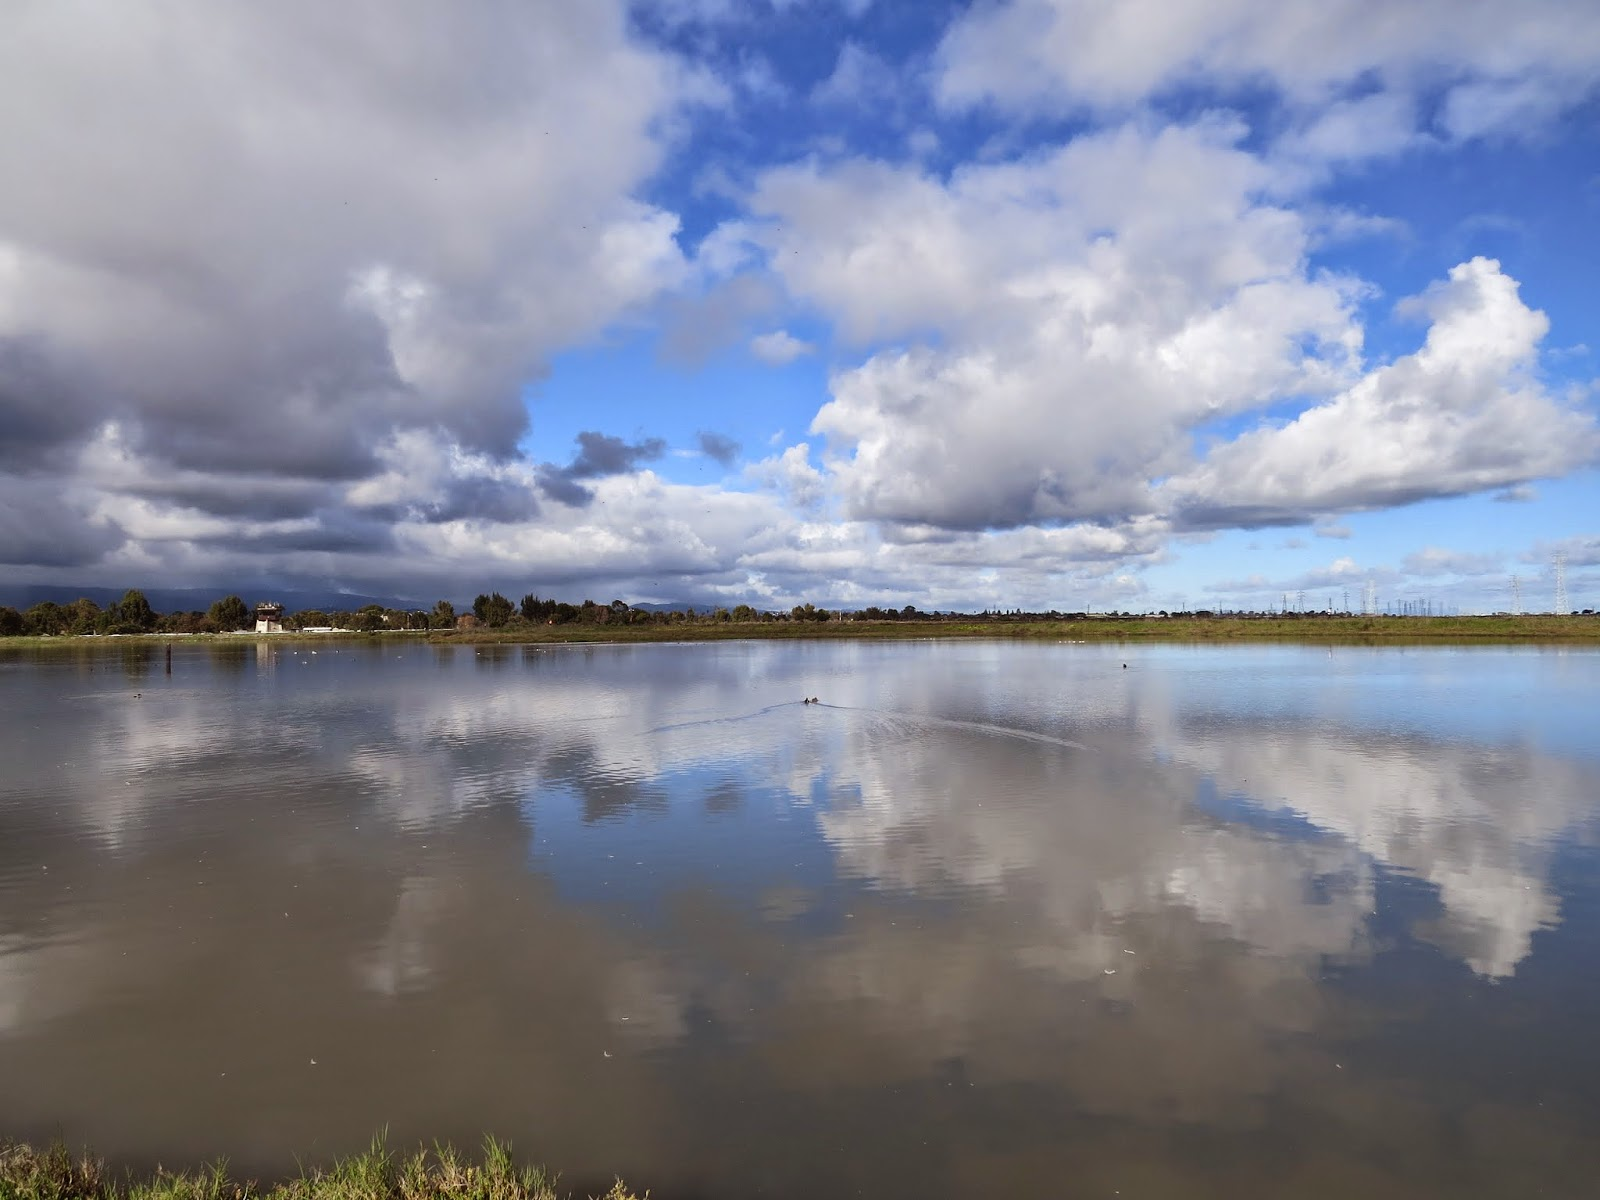 Cloud reflections on the wetlands at the Palo Alto Baylands